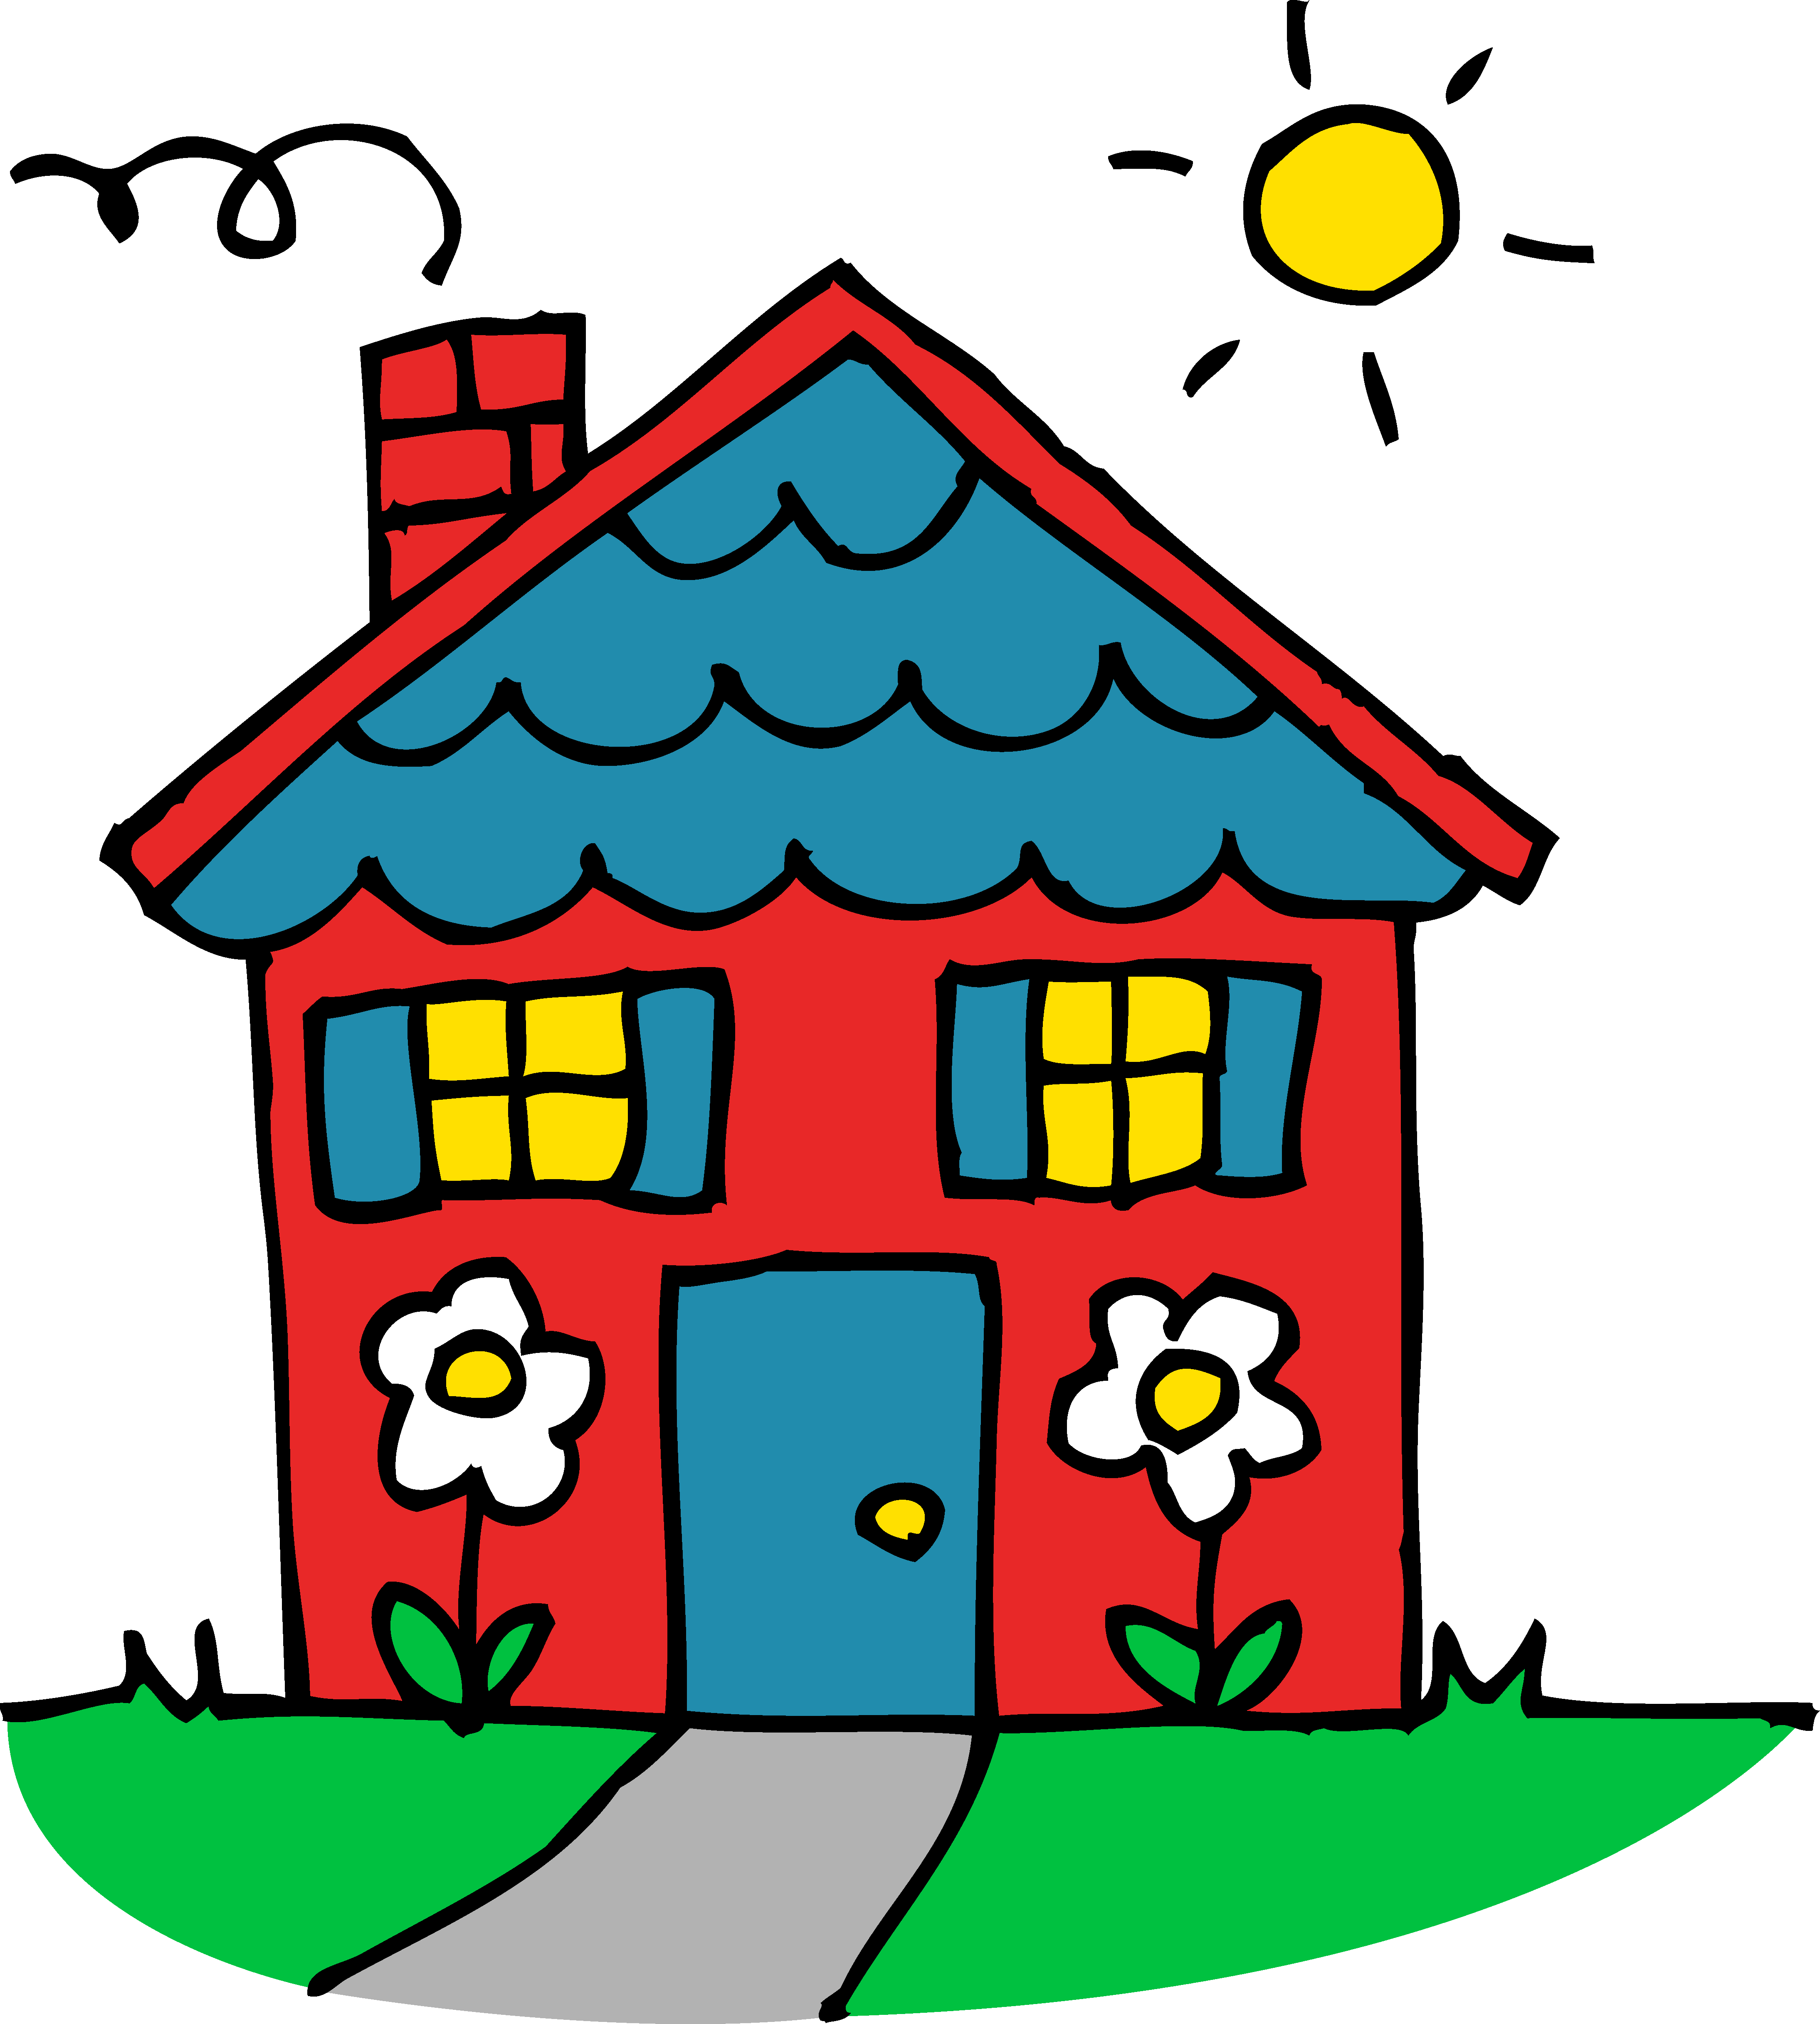 house clipart u0026middot; house clipart